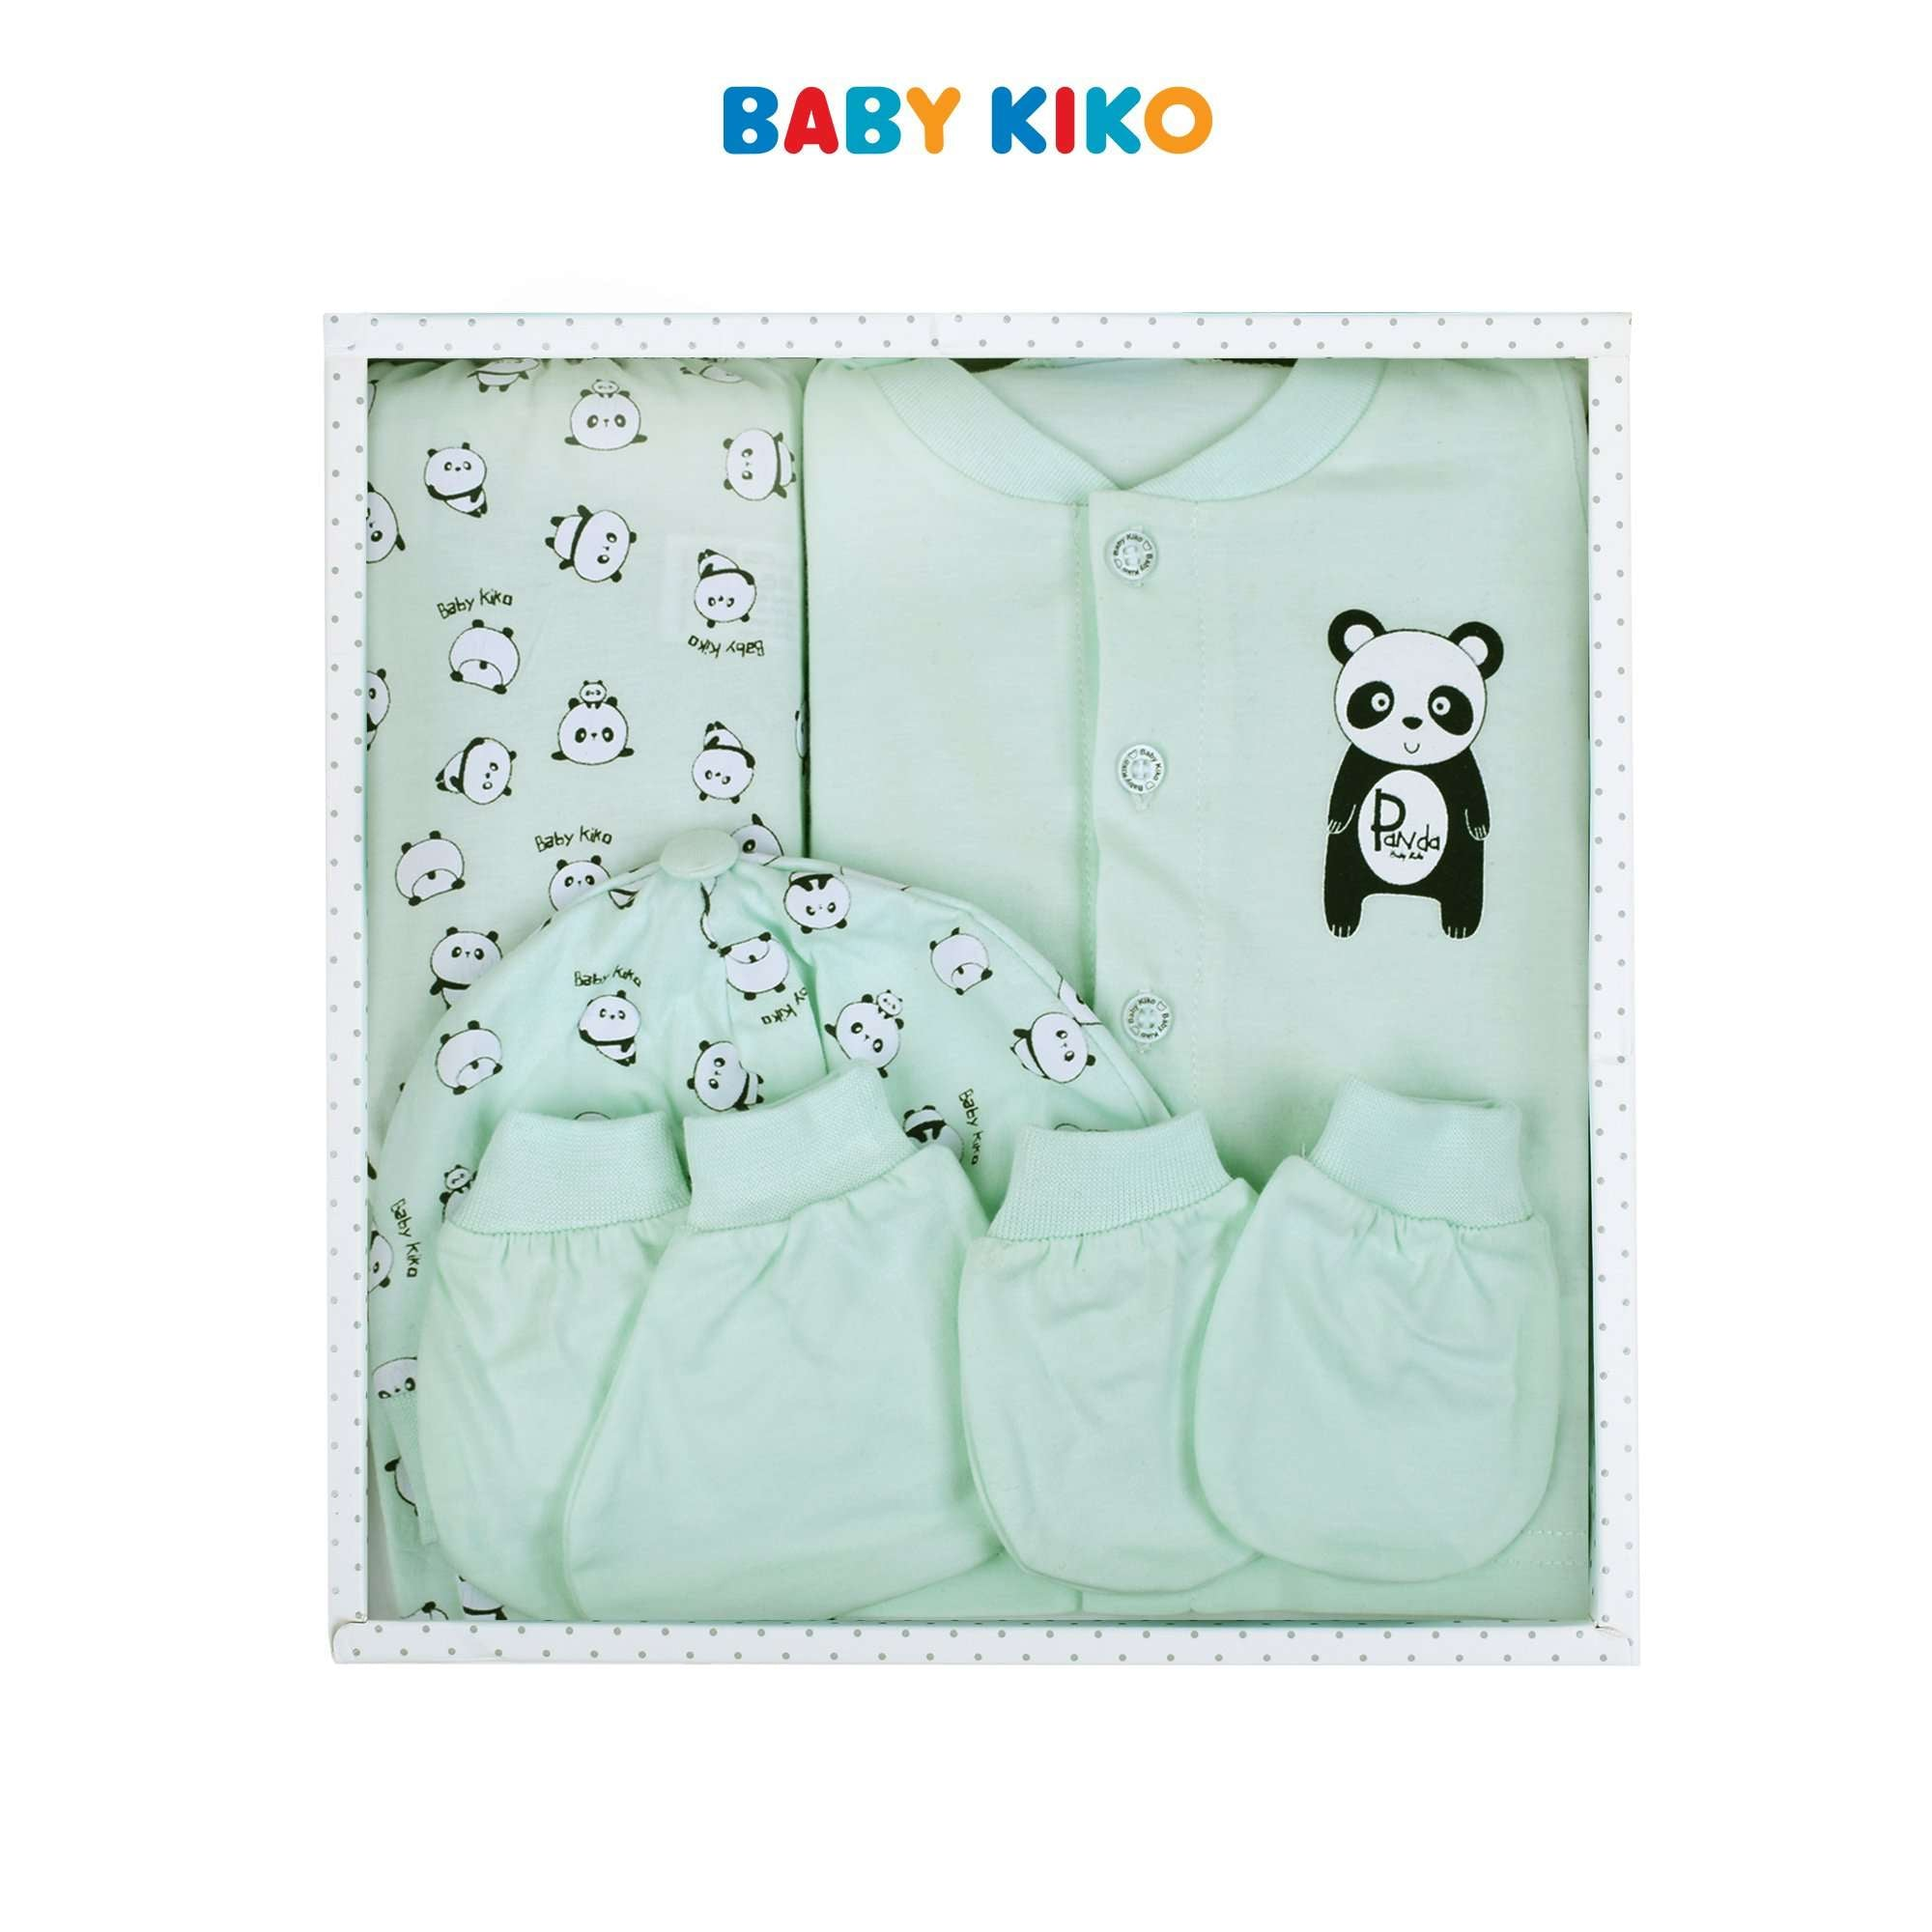 Baby KIKO Newborn Gift Set - Light Green 320180-601 : Buy Baby KIKO online at CMG.MY